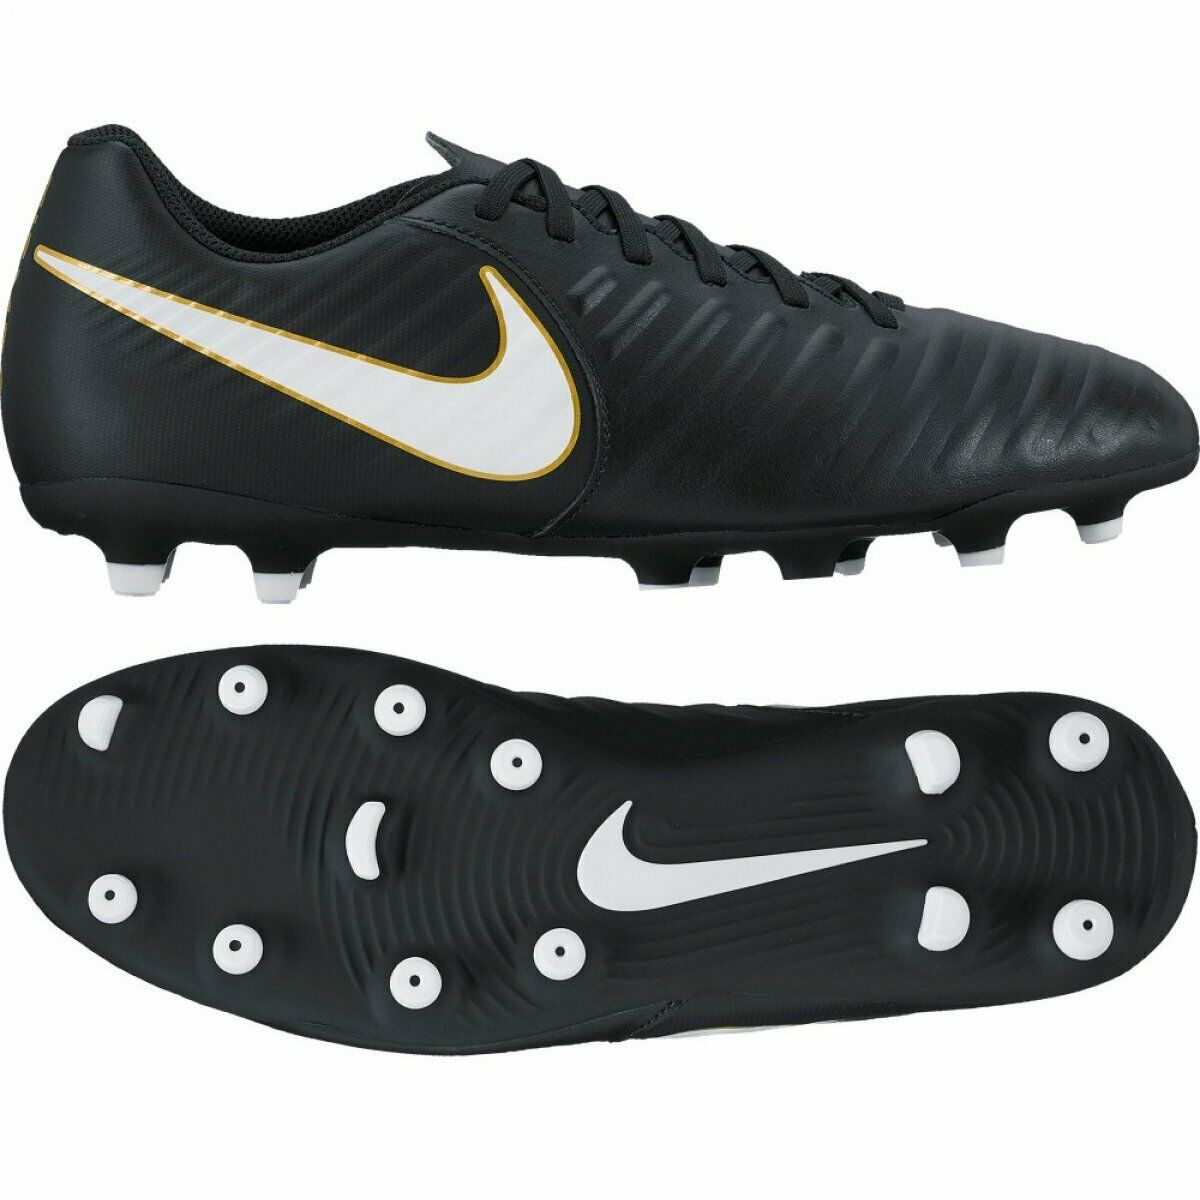 Football Chaussures Nike cravatempo Rio Iv Fg M 897759-002